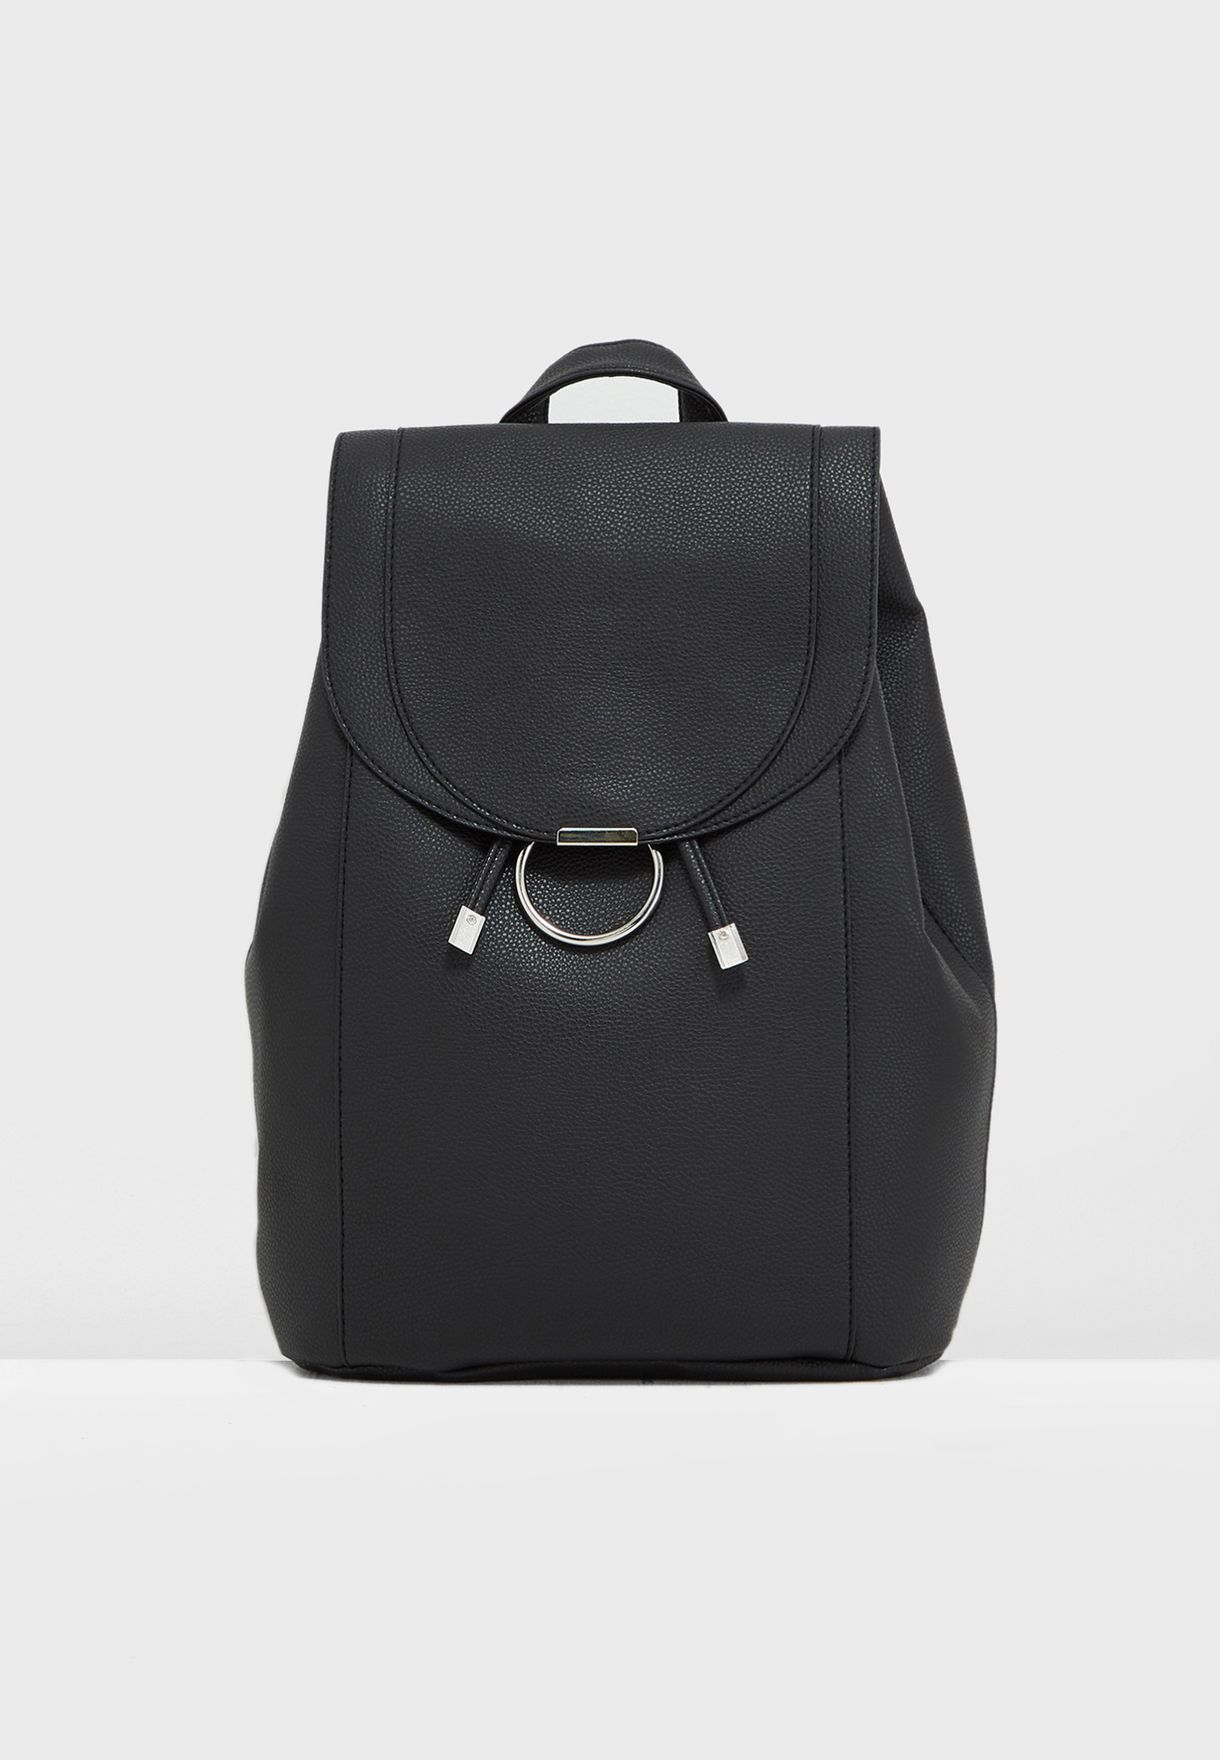 4cc1dd1a2 Shop New Look black Ring Front Backpack 572025101 for Women in UAE -  17736AC45NGP